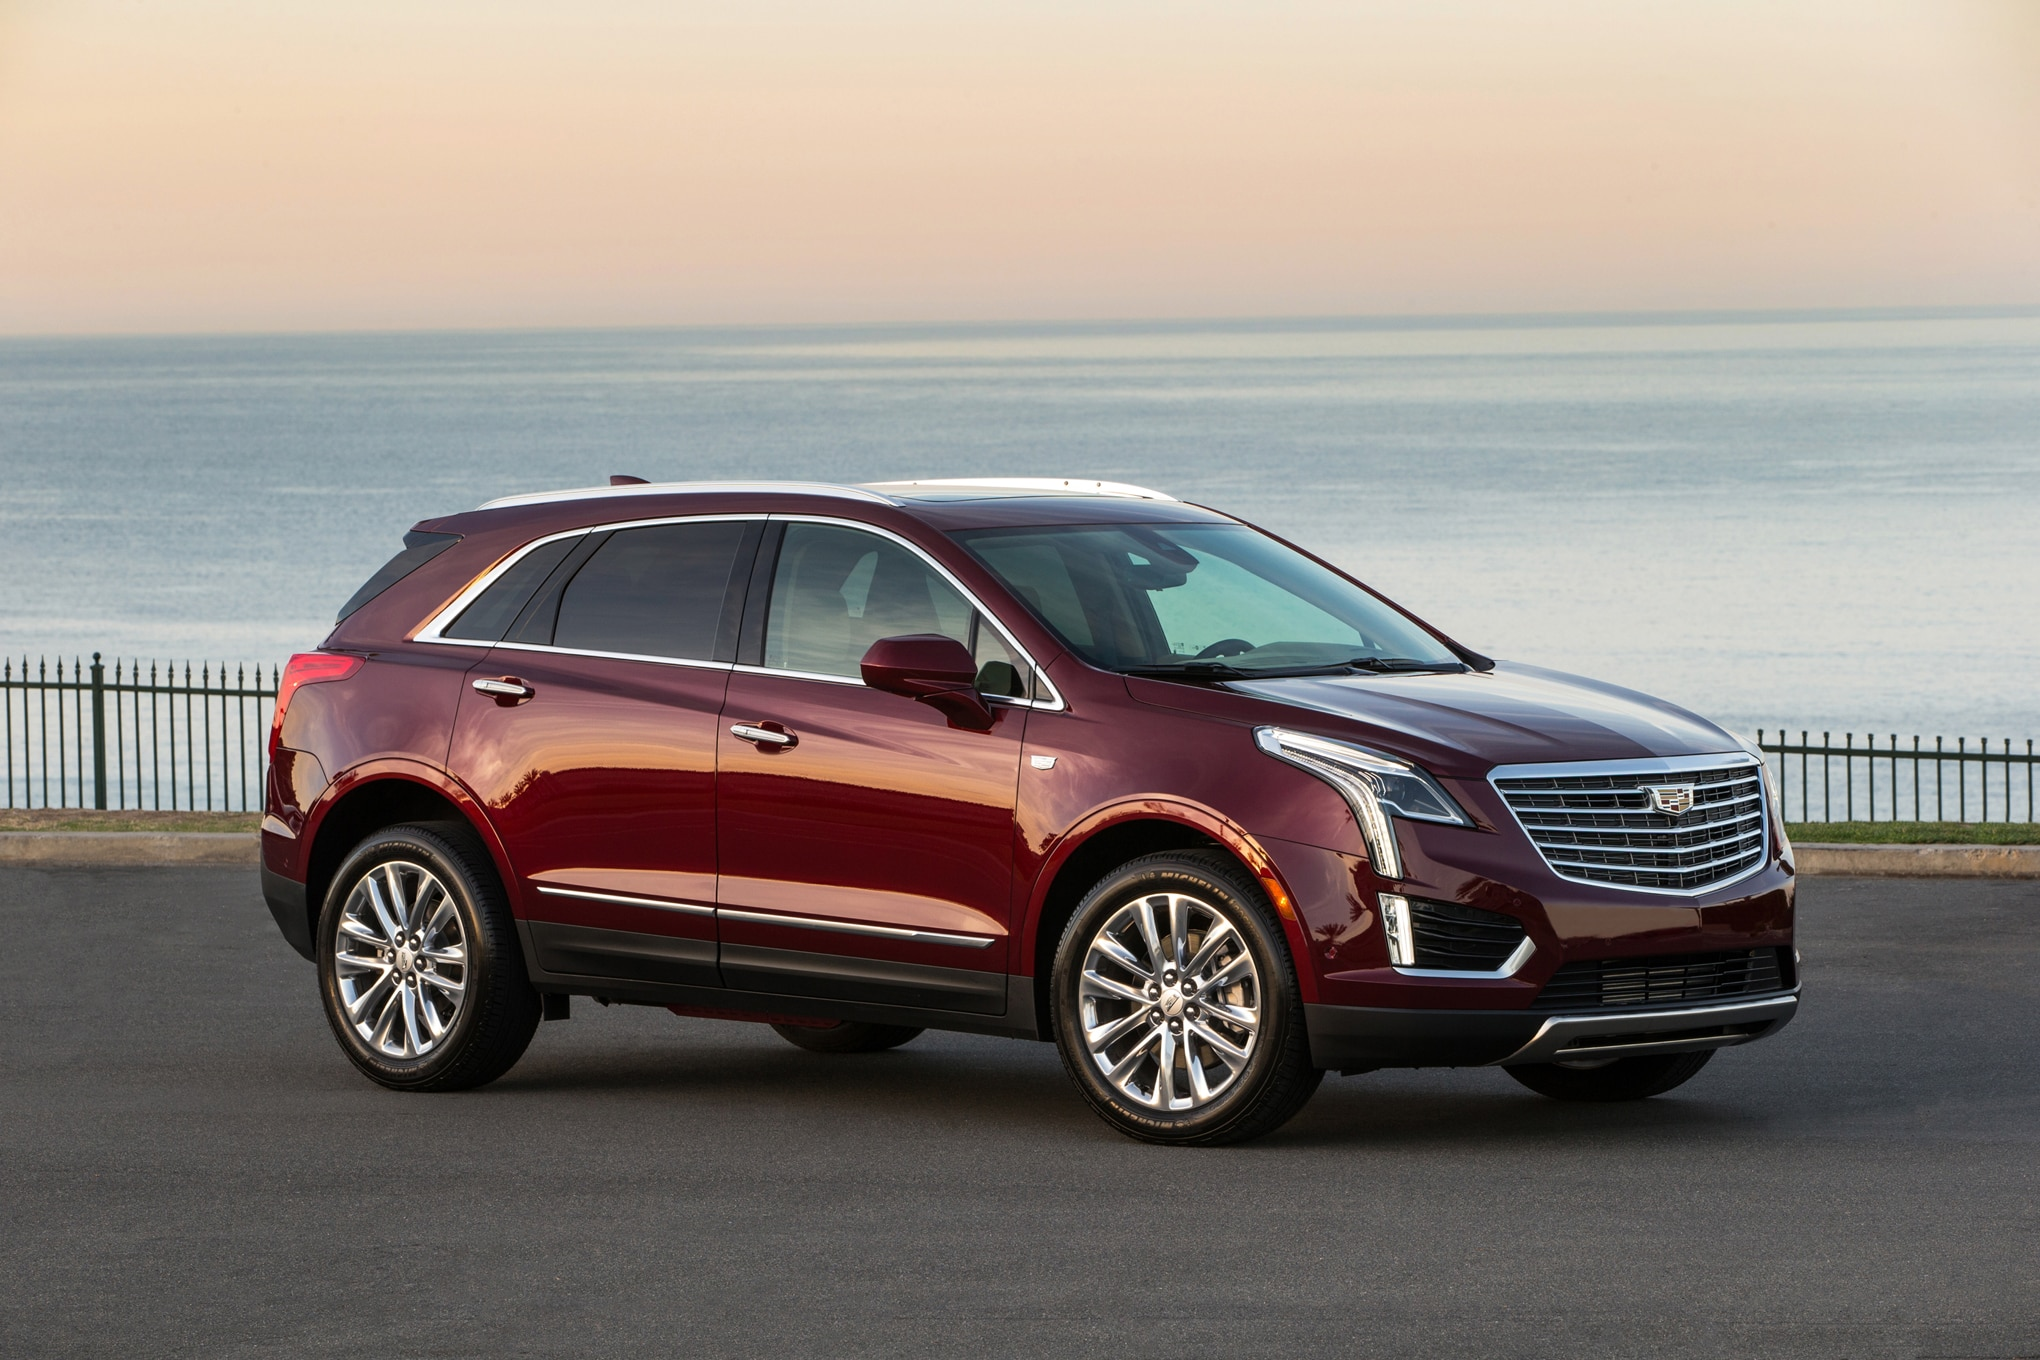 2017 Cadillac XT5 front three quarter 05 cadillac xt5 could soon gain four cylinder turbo automobile magazine Cadillac CTS 2003 Wiring-Diagram at reclaimingppi.co